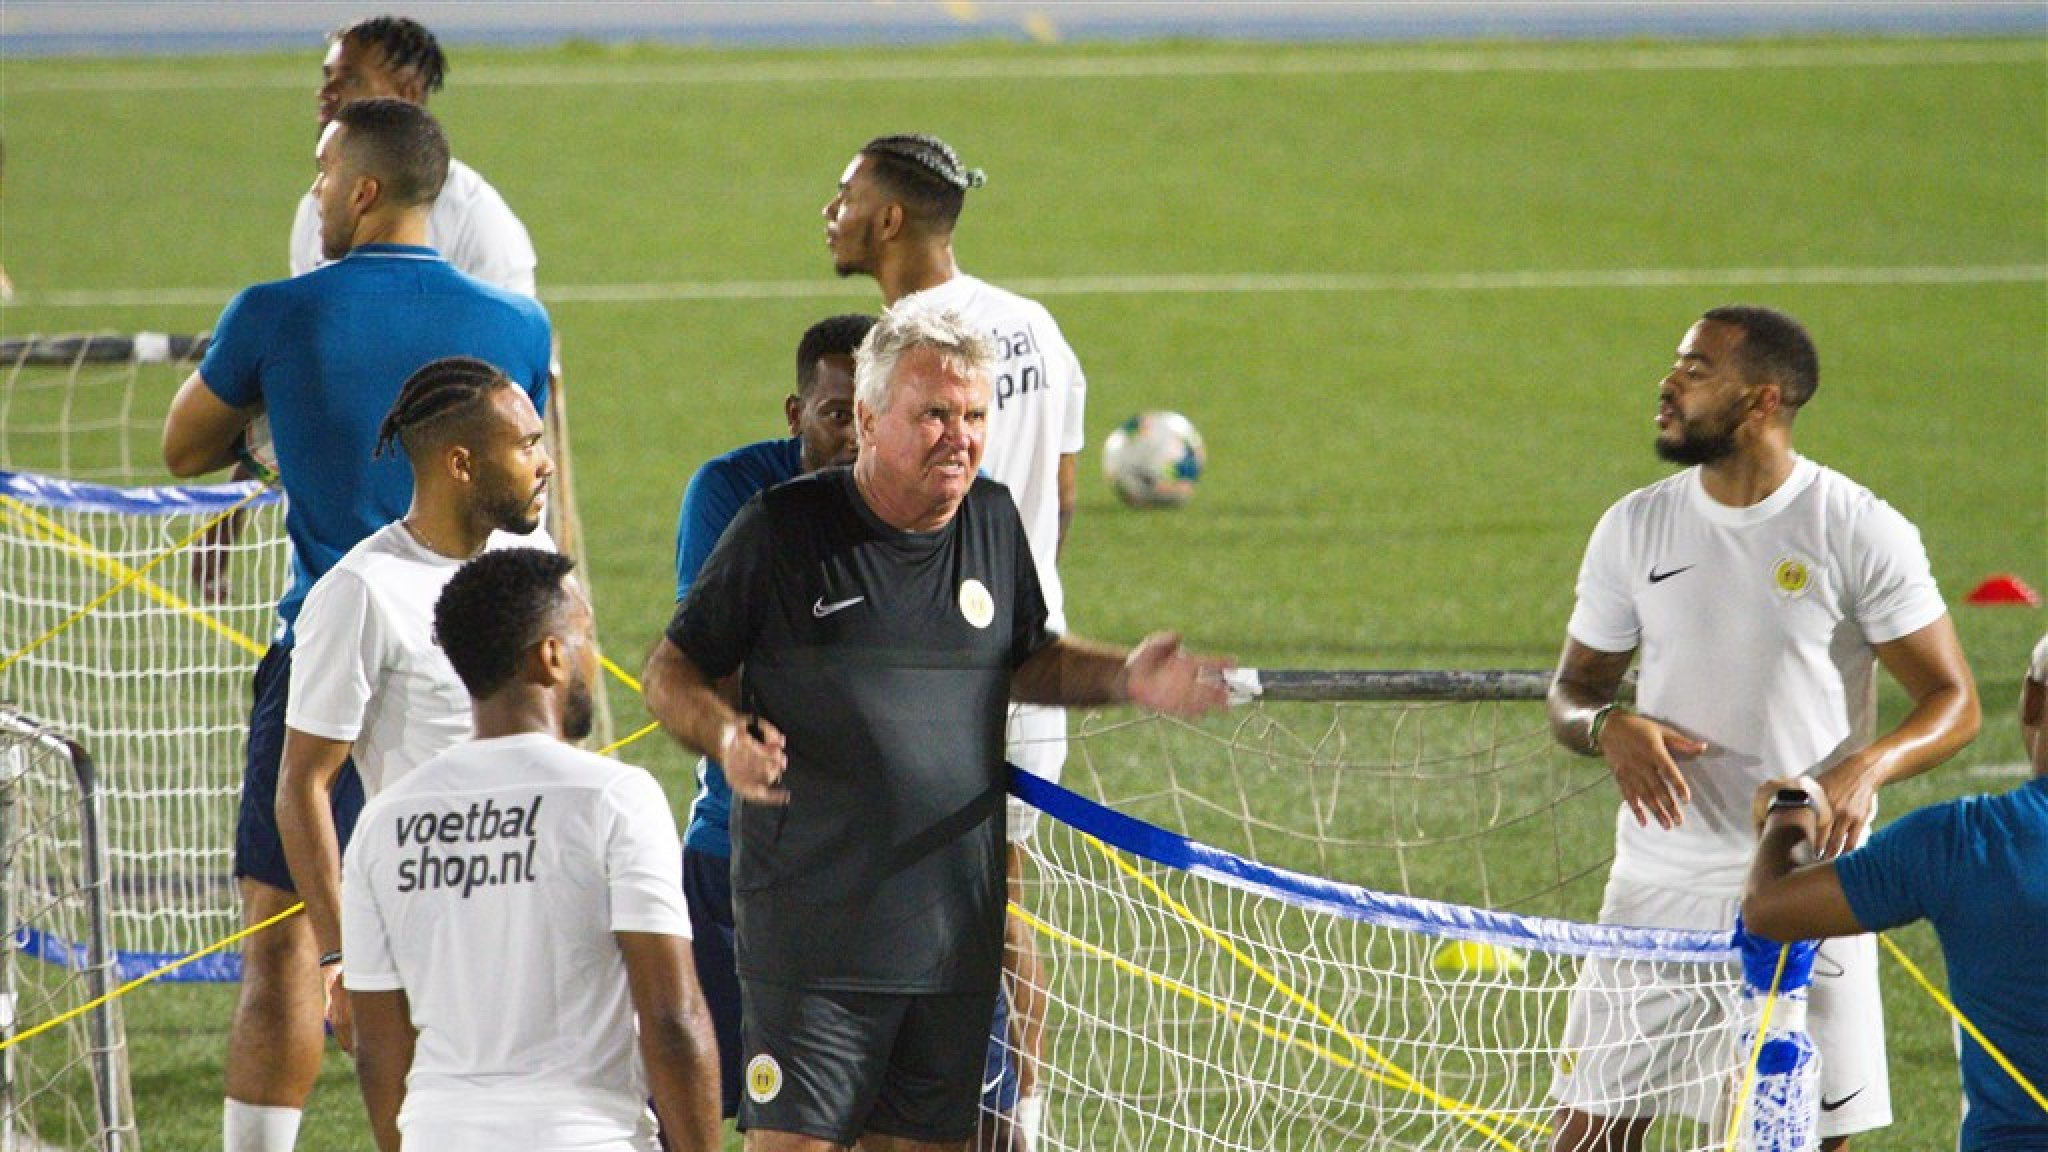 Curaçao wins again in World Cup qualifiers, this time against Cuba